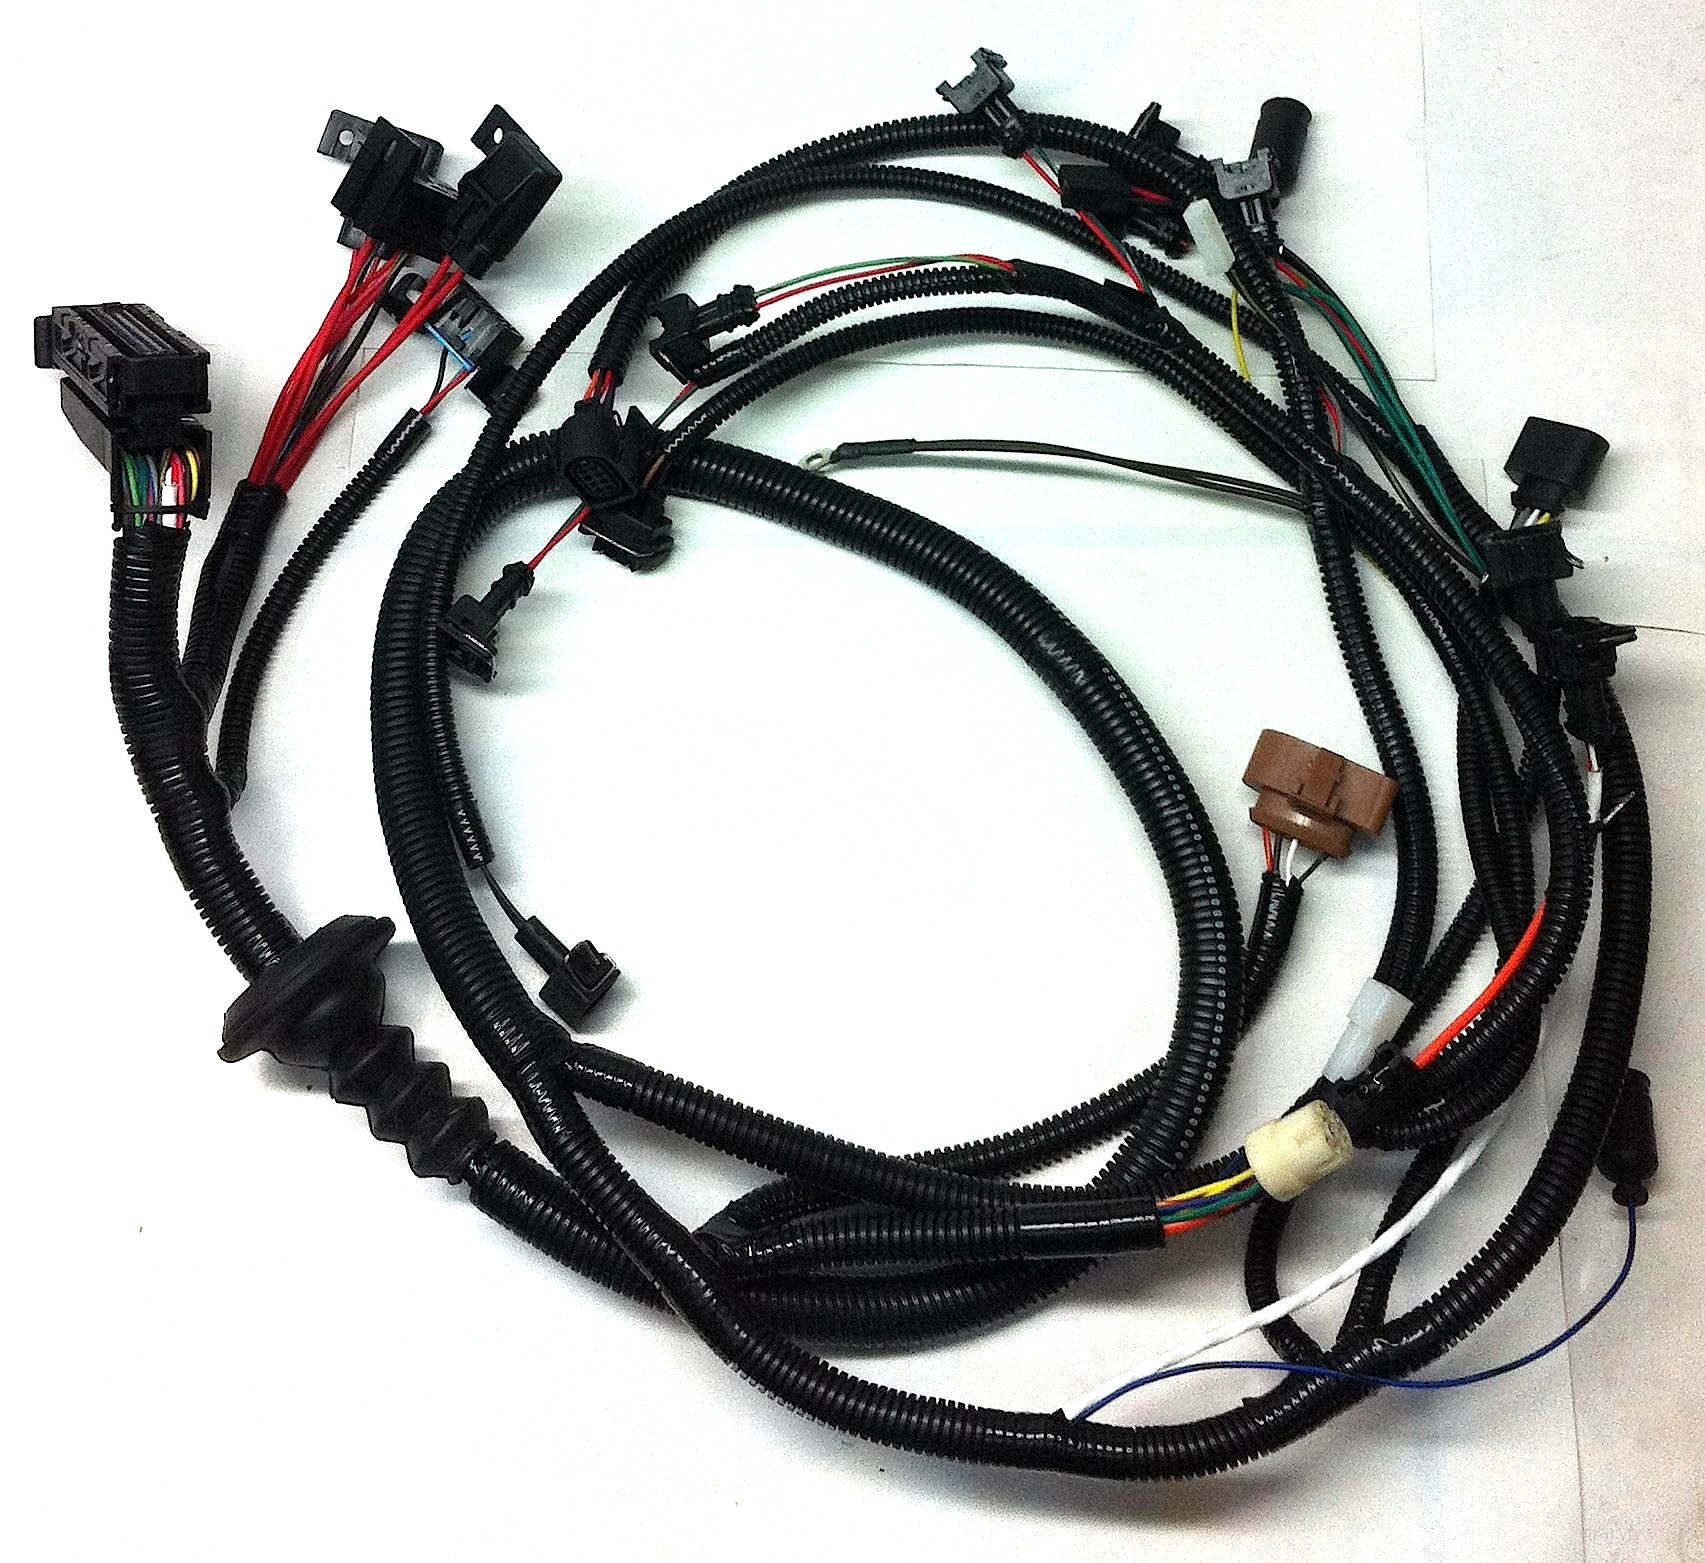 Wiring_Harness_2LR 2lr tiico conversion wiring harness foreign auto & supply, inc wire harness supplies at gsmportal.co